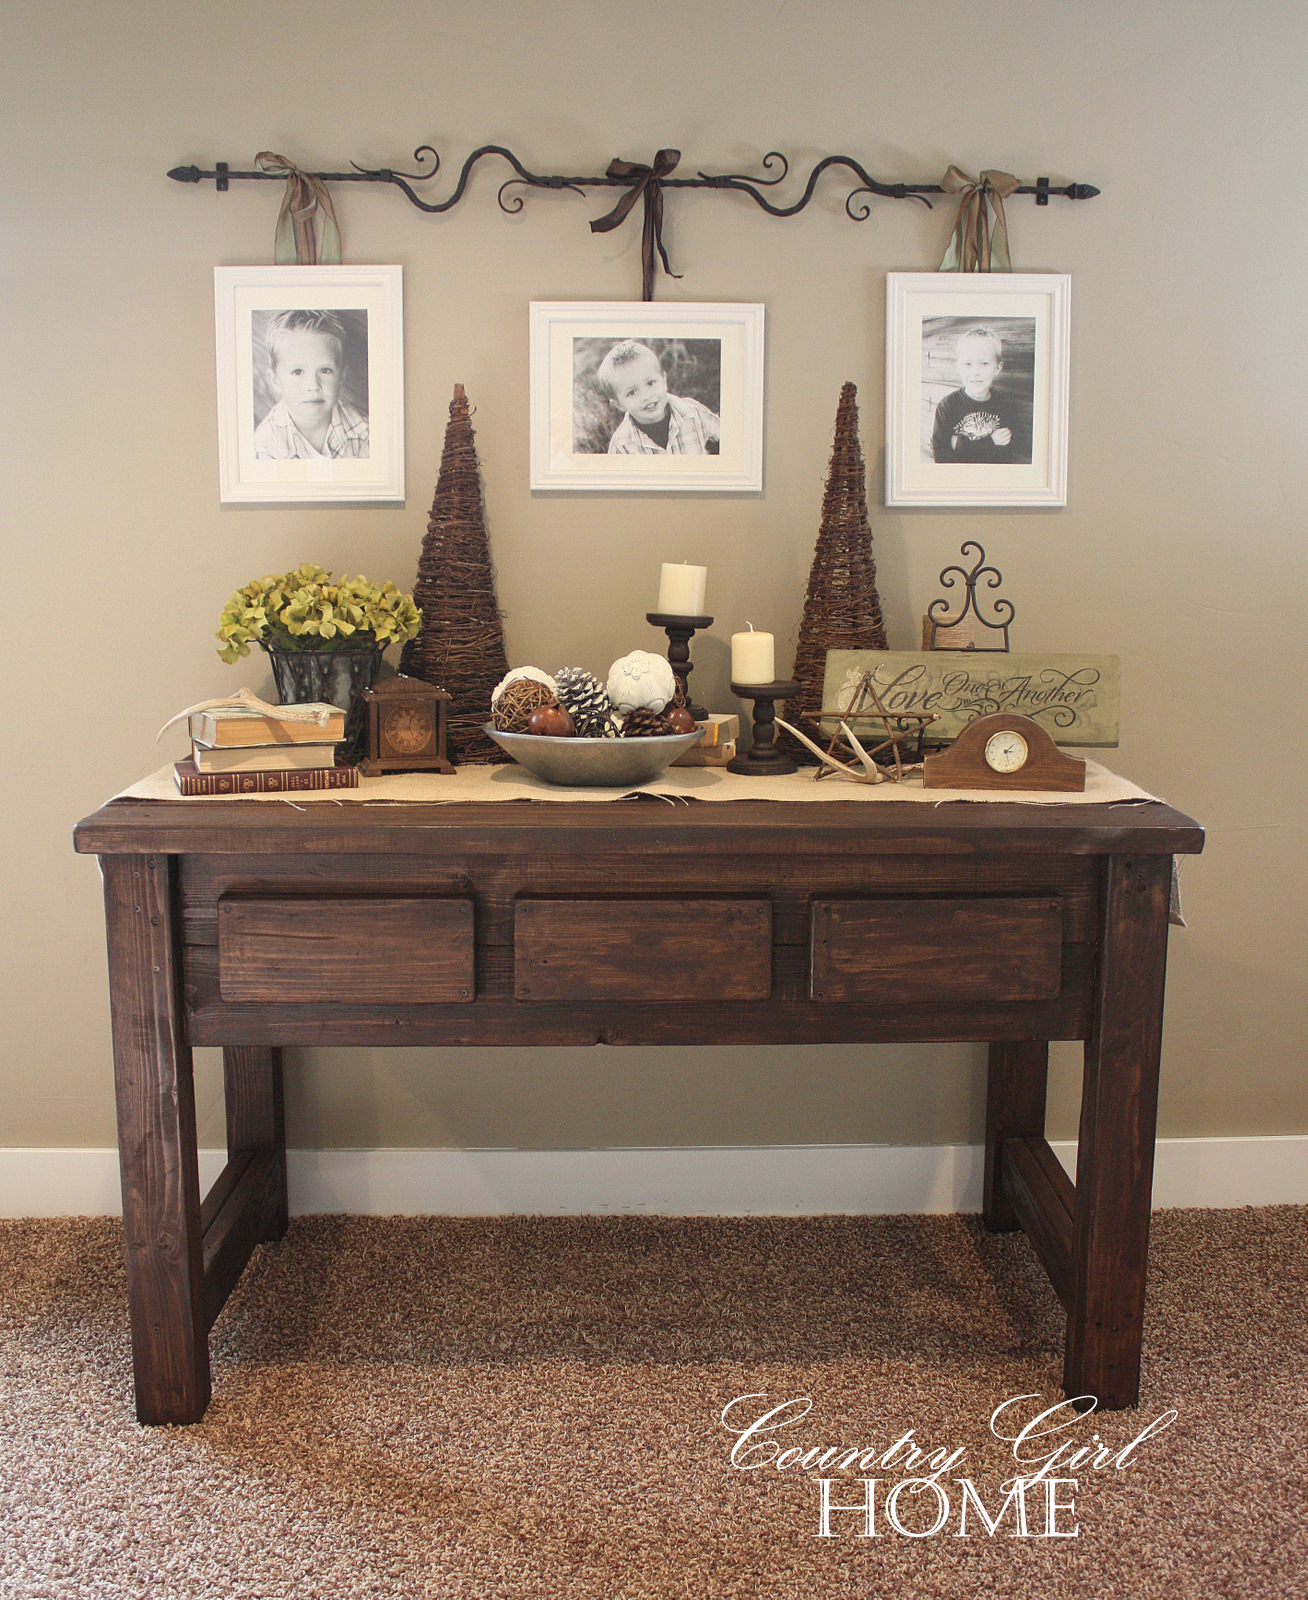 Sofa table decorating ideas decorating ideas for Living room sofa table decorating